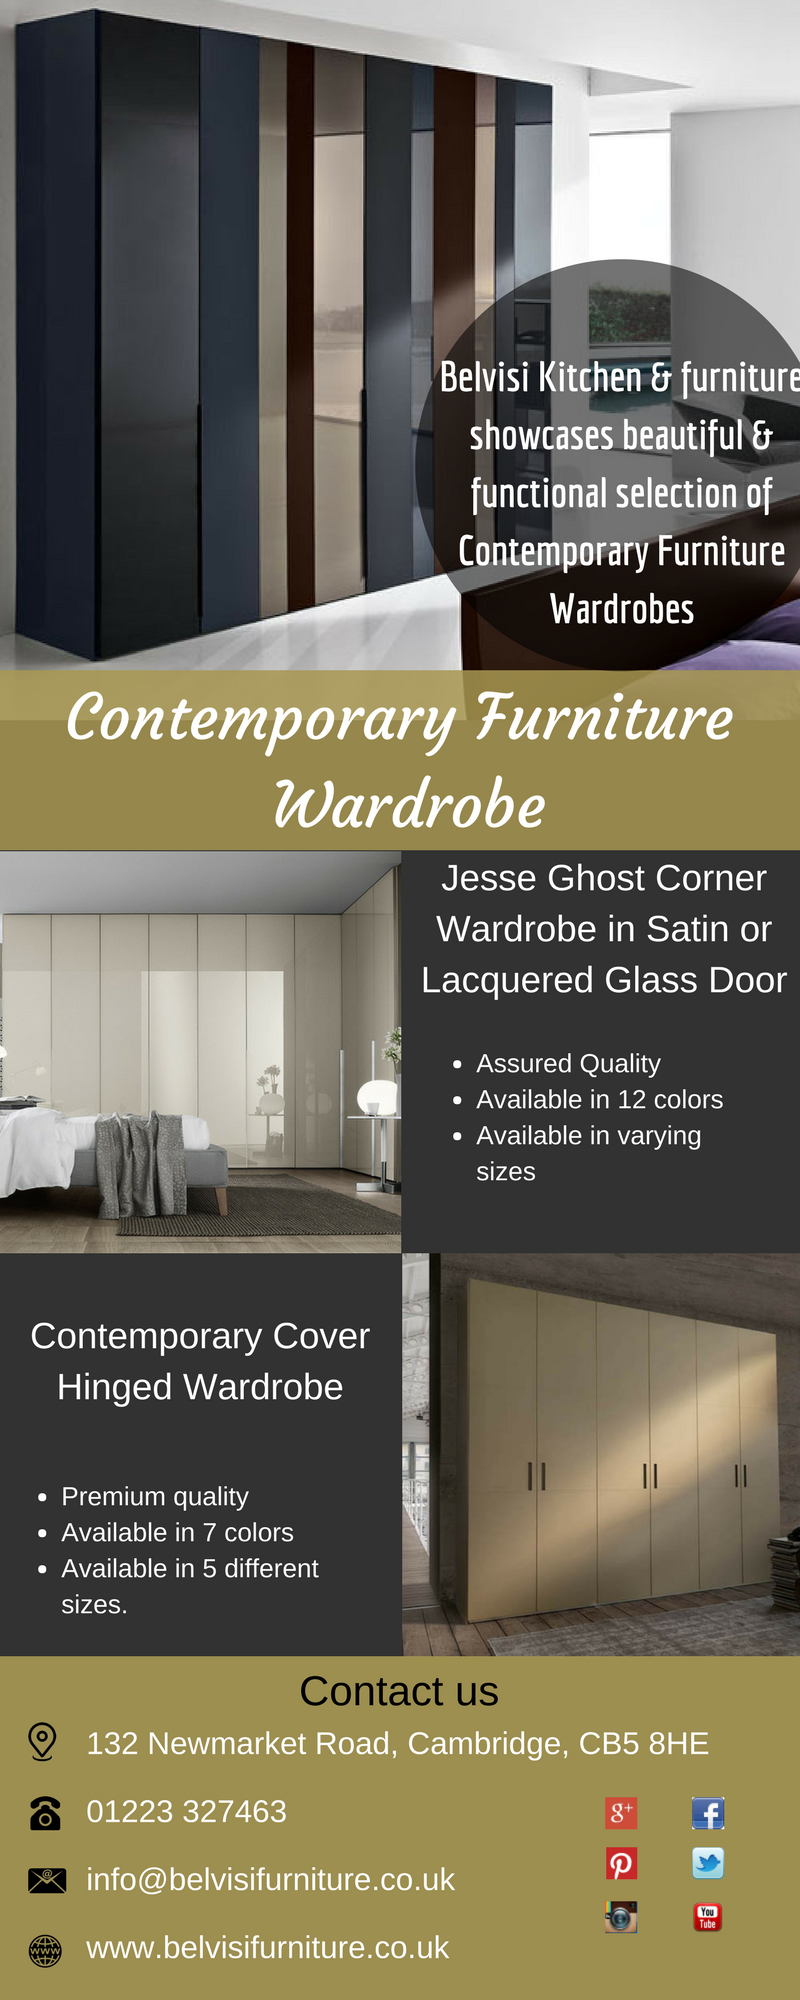 Contemporary furniture wardrobes are available here at